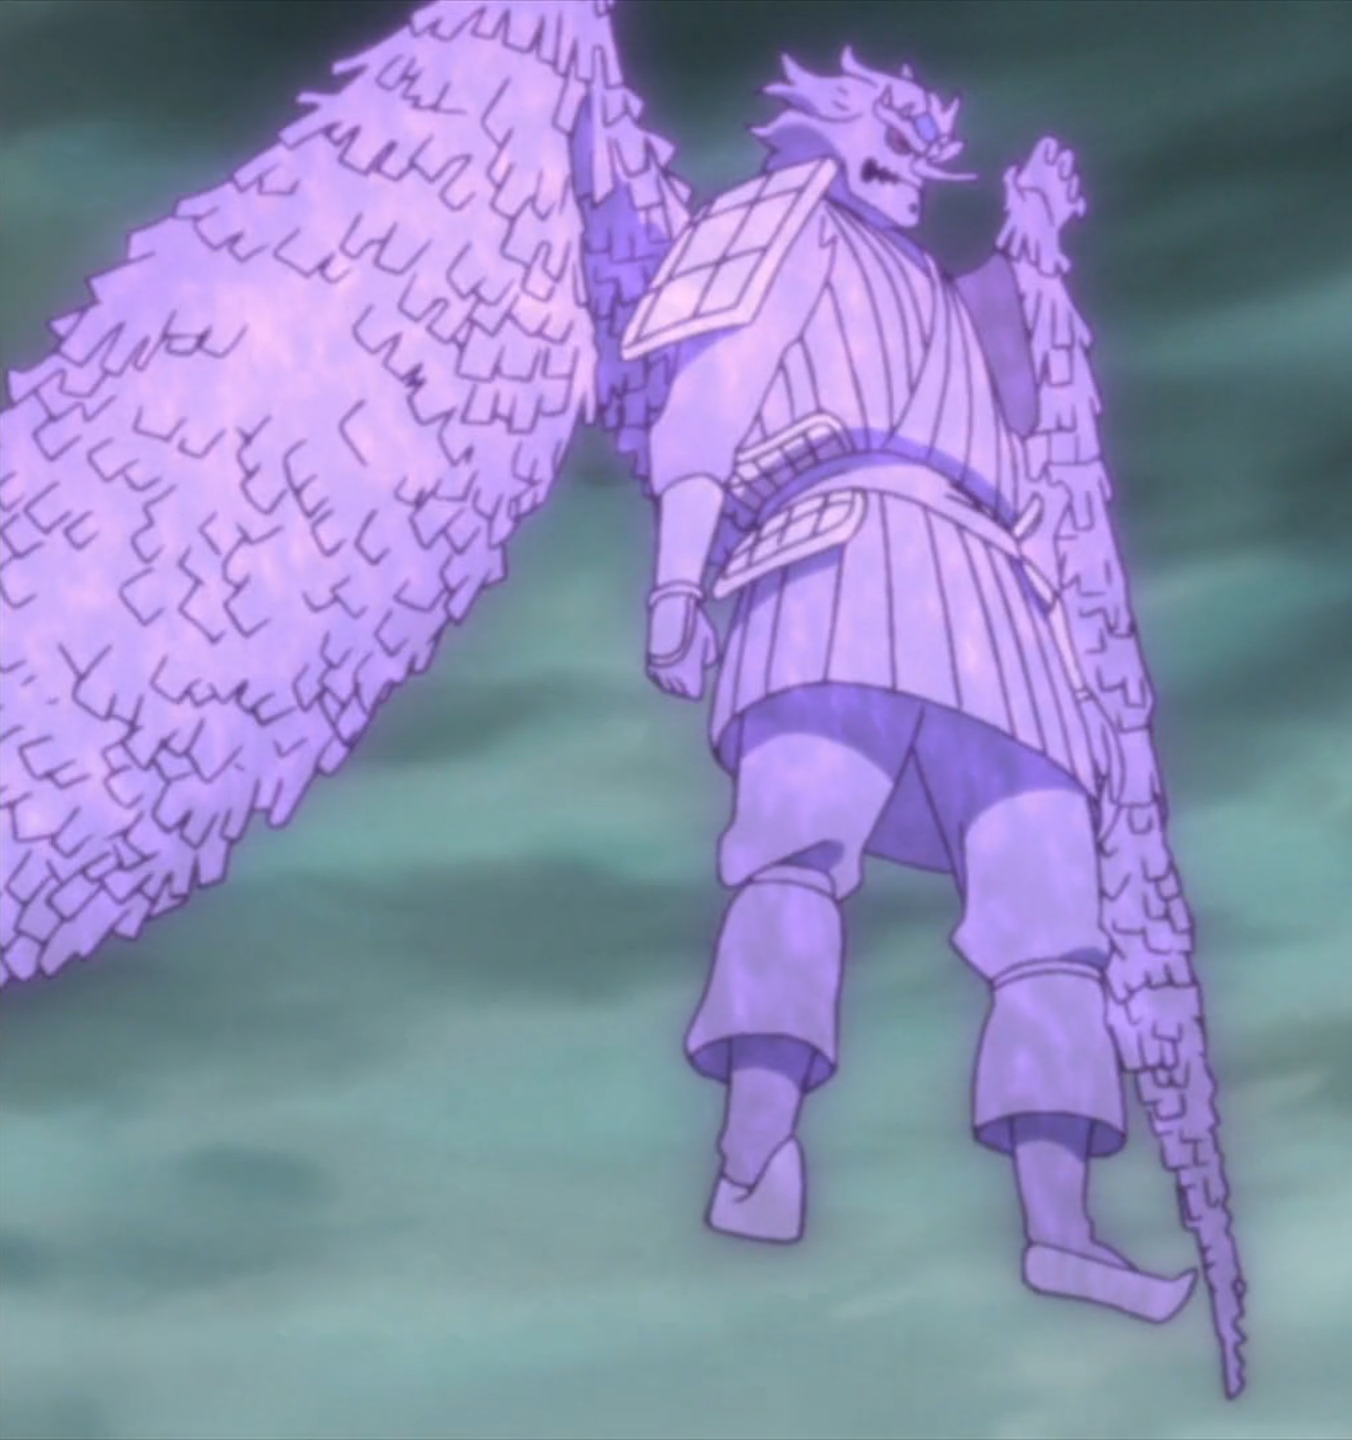 Is Susanoo stronger than the Bijuu mode? - Quora